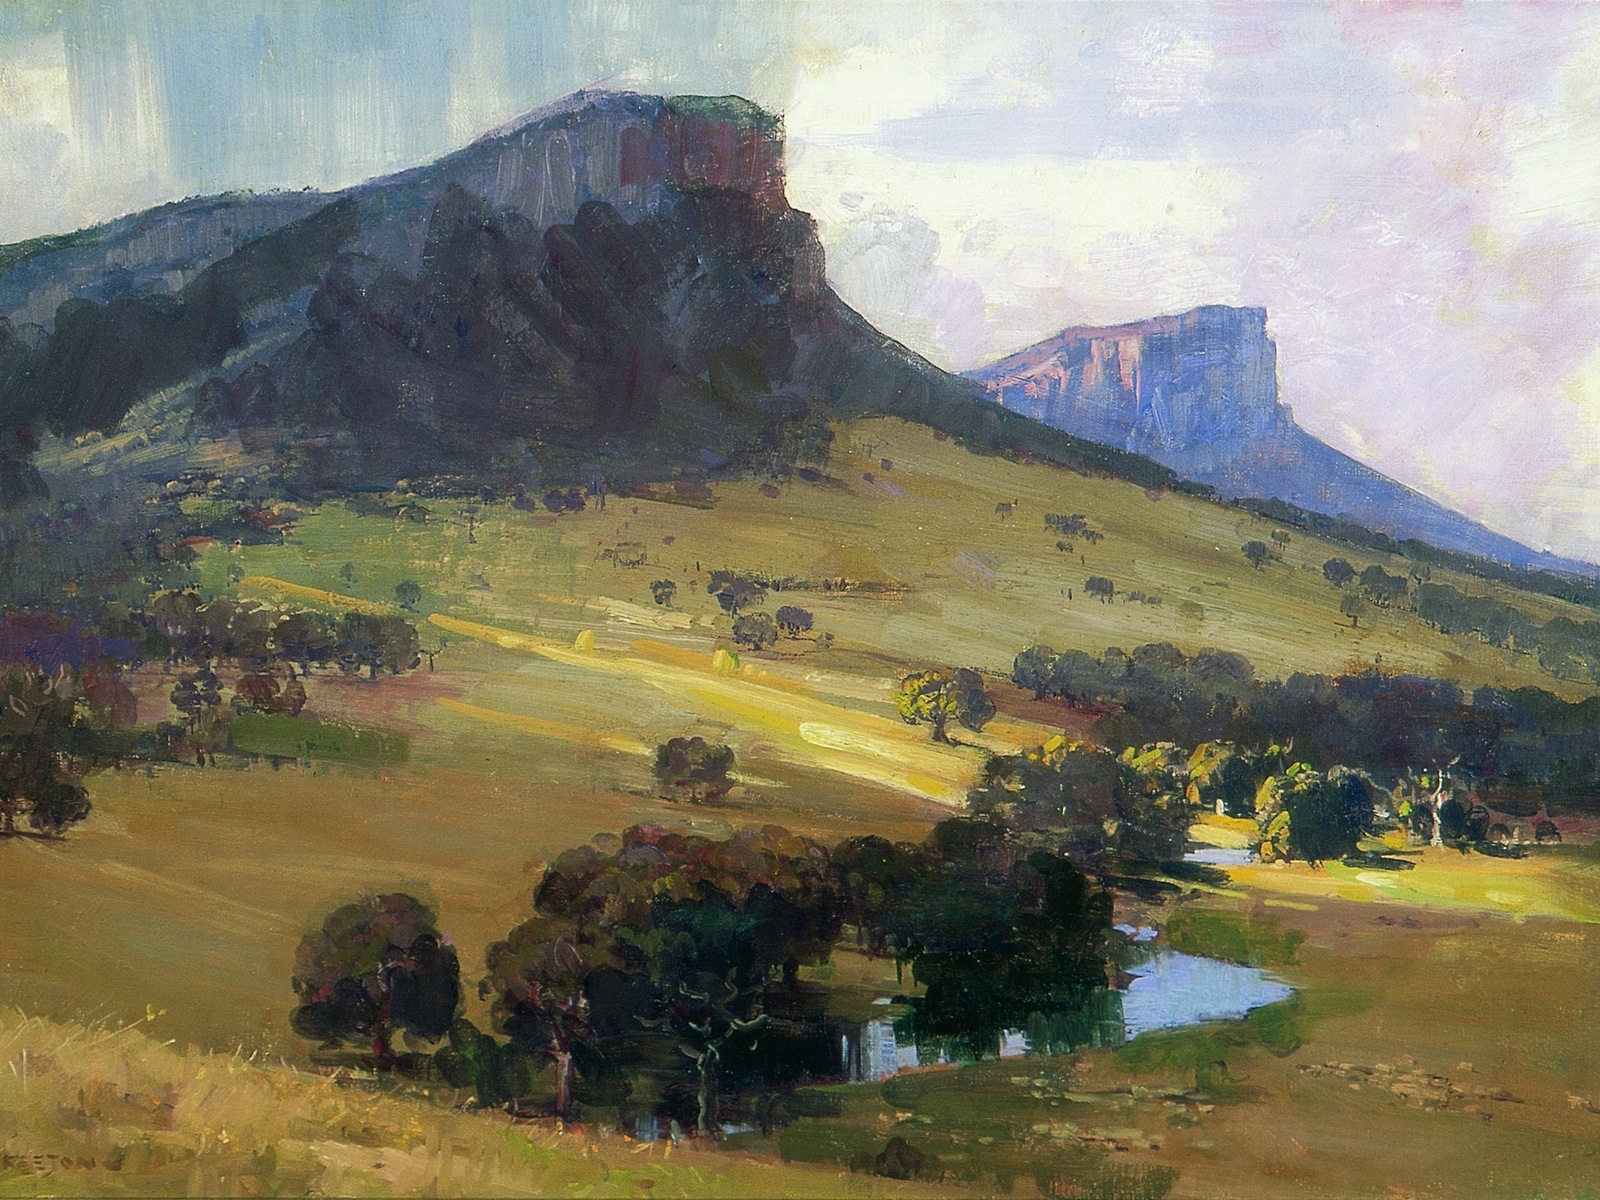 Arthur Streeton, Mt Sturgeon and Mt Abrupt 1921 oil on canvas, 51.8 x 76.5cm, private collection, courtesy Sotheby's Australia